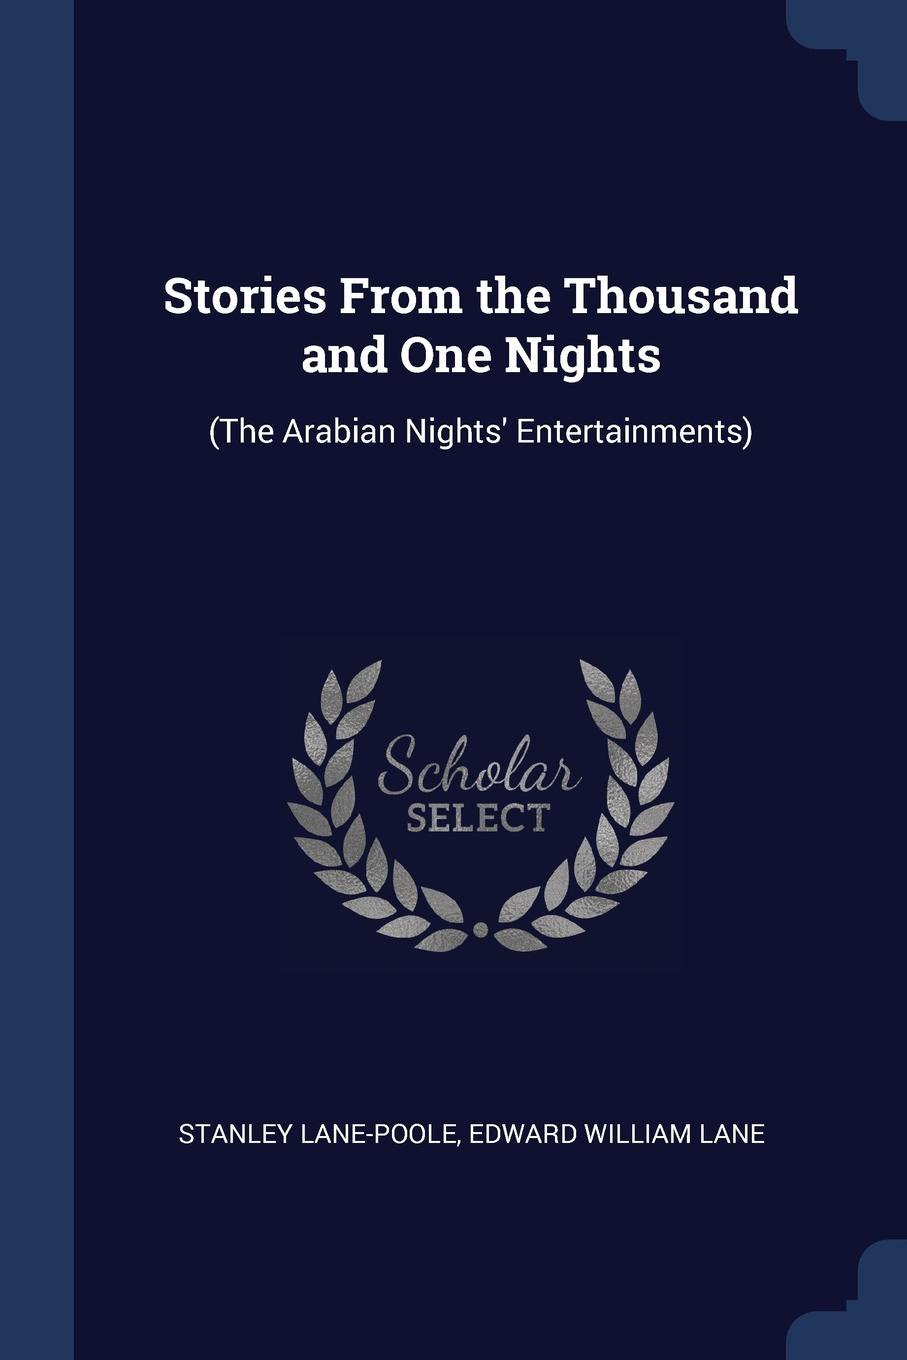 Stories From the Thousand and One Nights. (The Arabian Nights. Entertainments). Stanley Lane-Poole, Edward William Lane